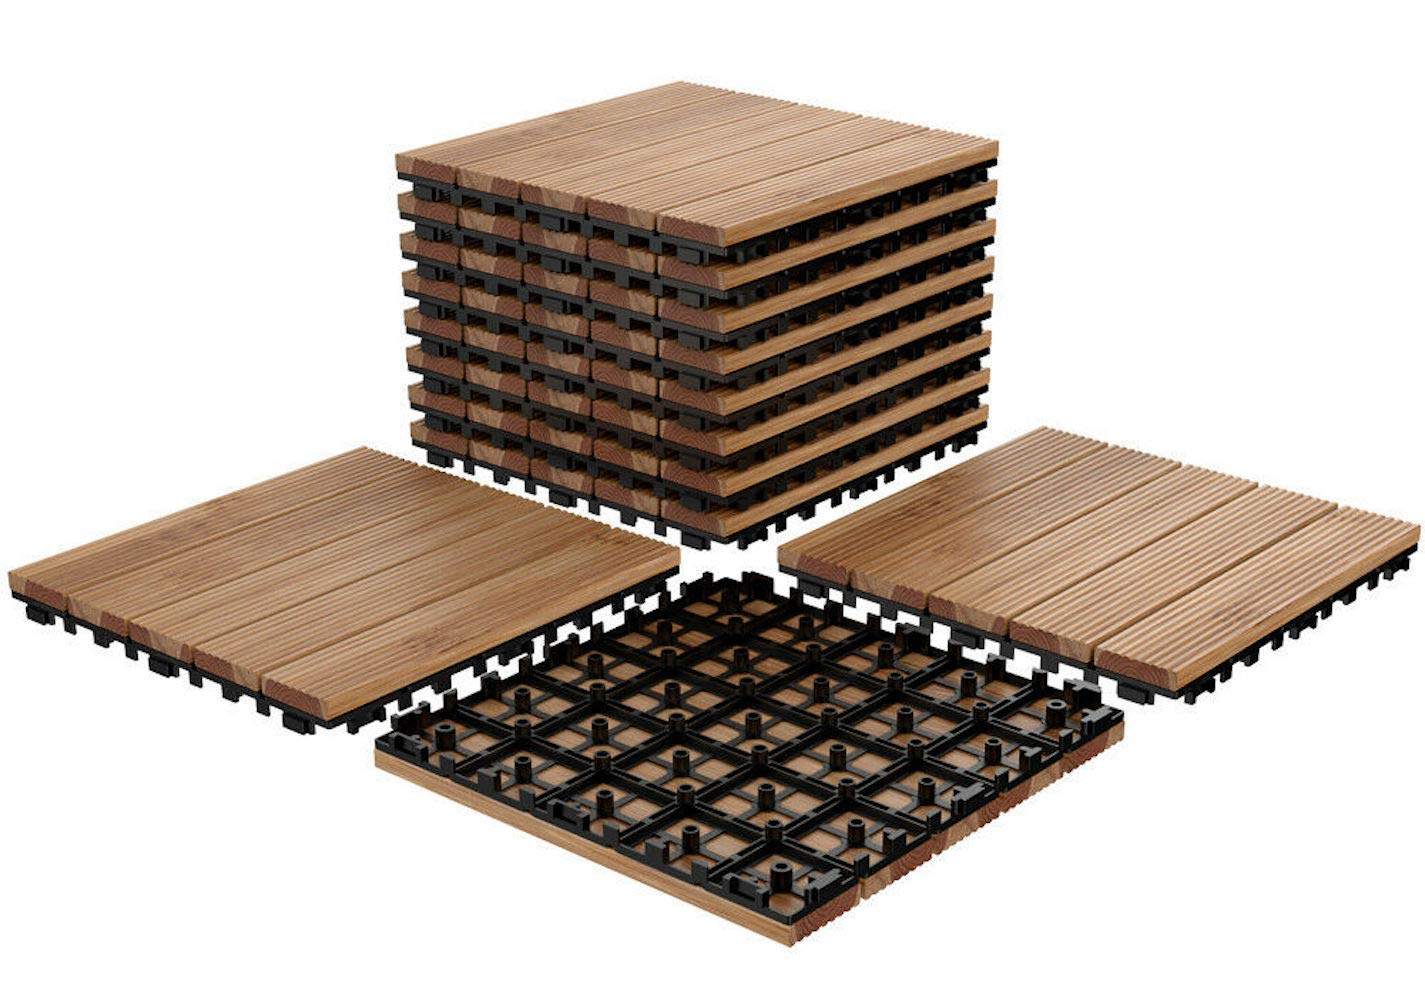 Amazon.com: Cypress Shop Interlocking Wood Tile Flooring ...